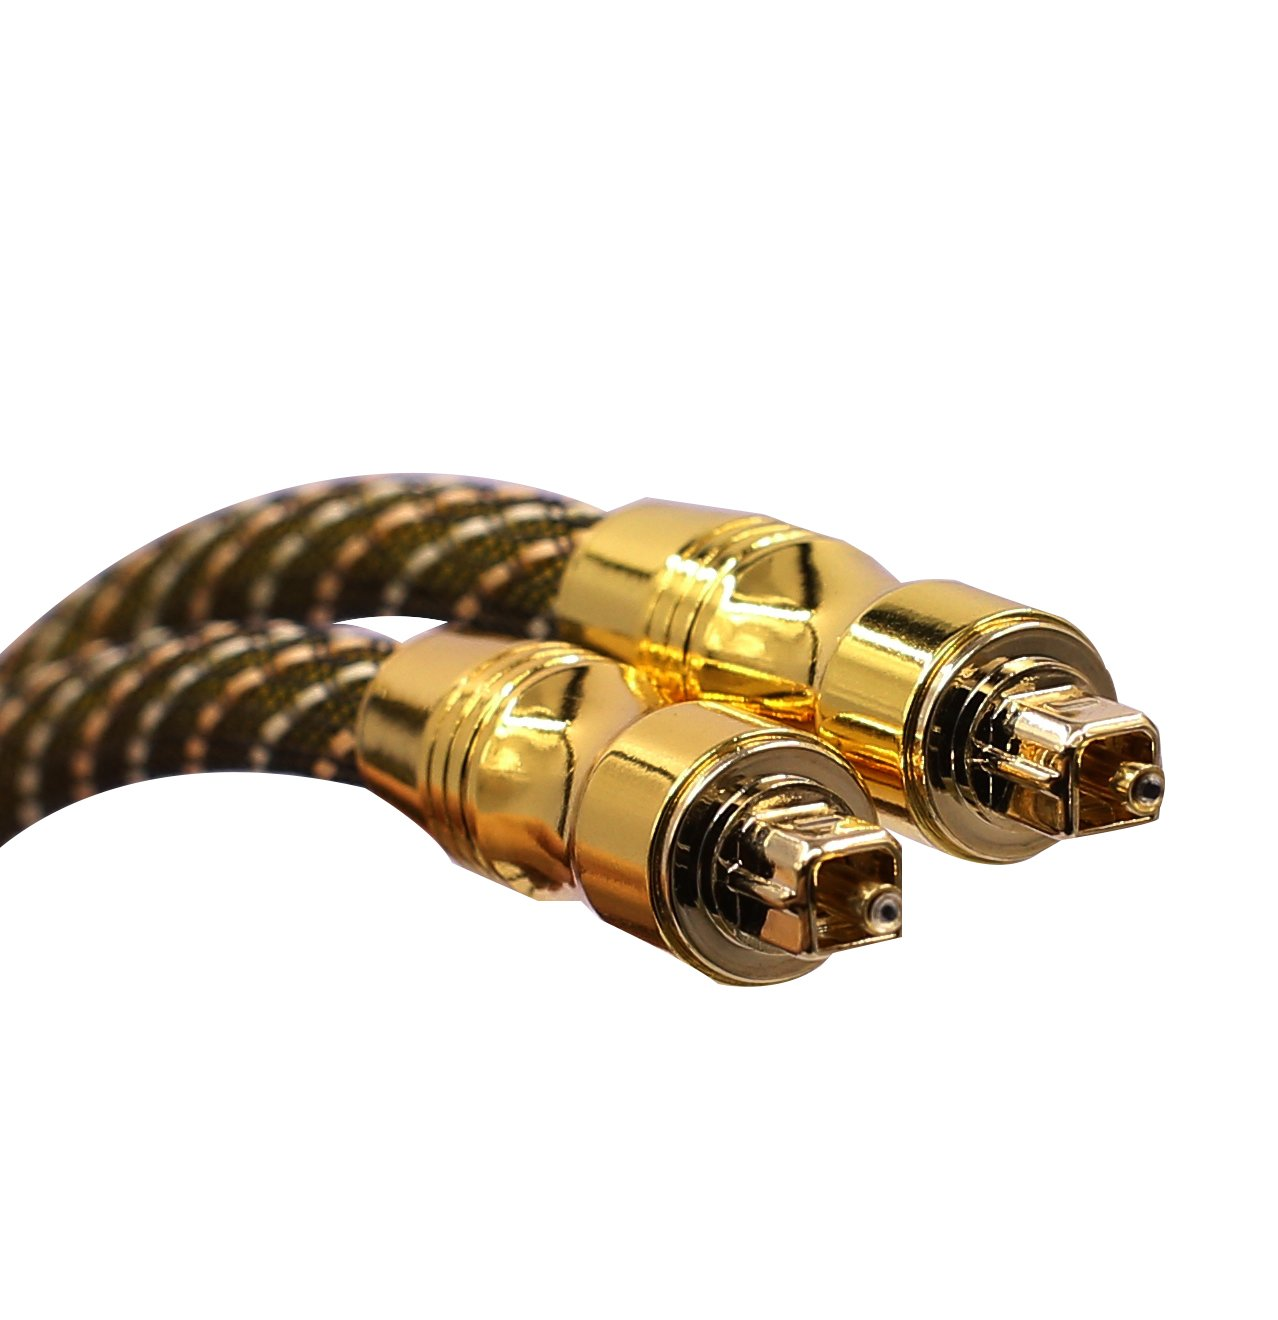 SiGuTie Optical Audio Cable 10FT,Home Theater Gold Plated Optical Cables Male to Male Braided Cord for DVD, Sound Bar, HDTV, PS3, Xbox